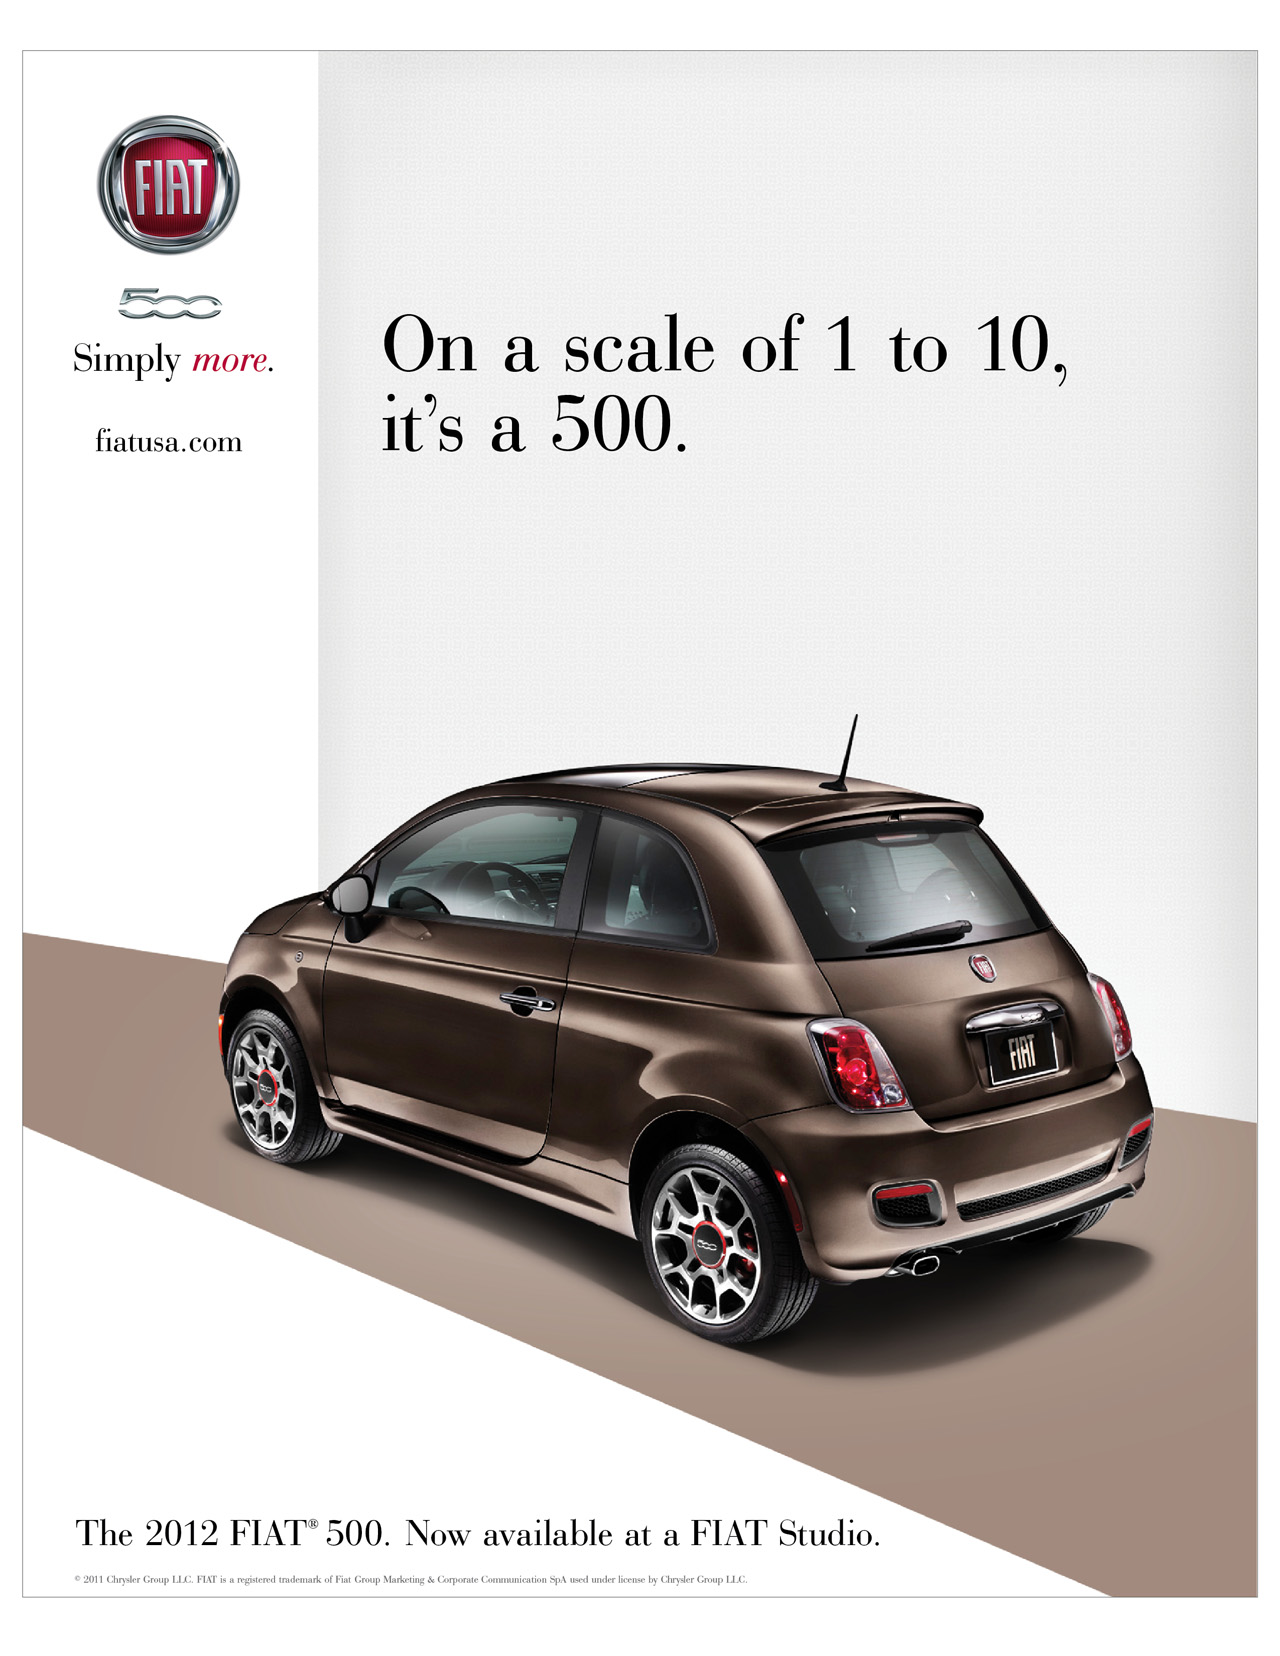 Fiat Commences 500 National Media Onslaught W Video